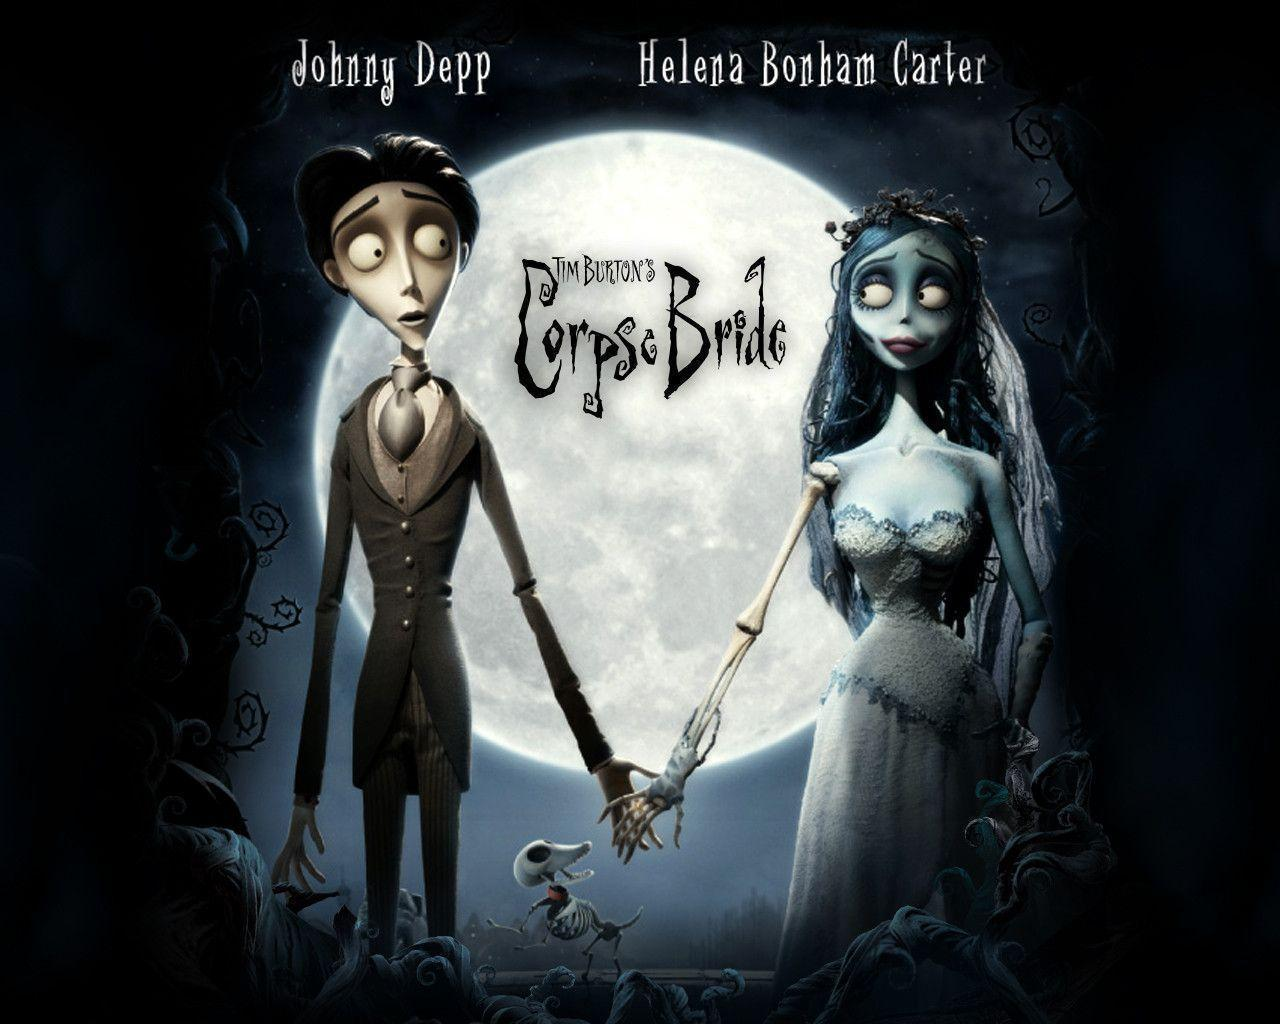 corpse bride movie wallpapers - photo #5